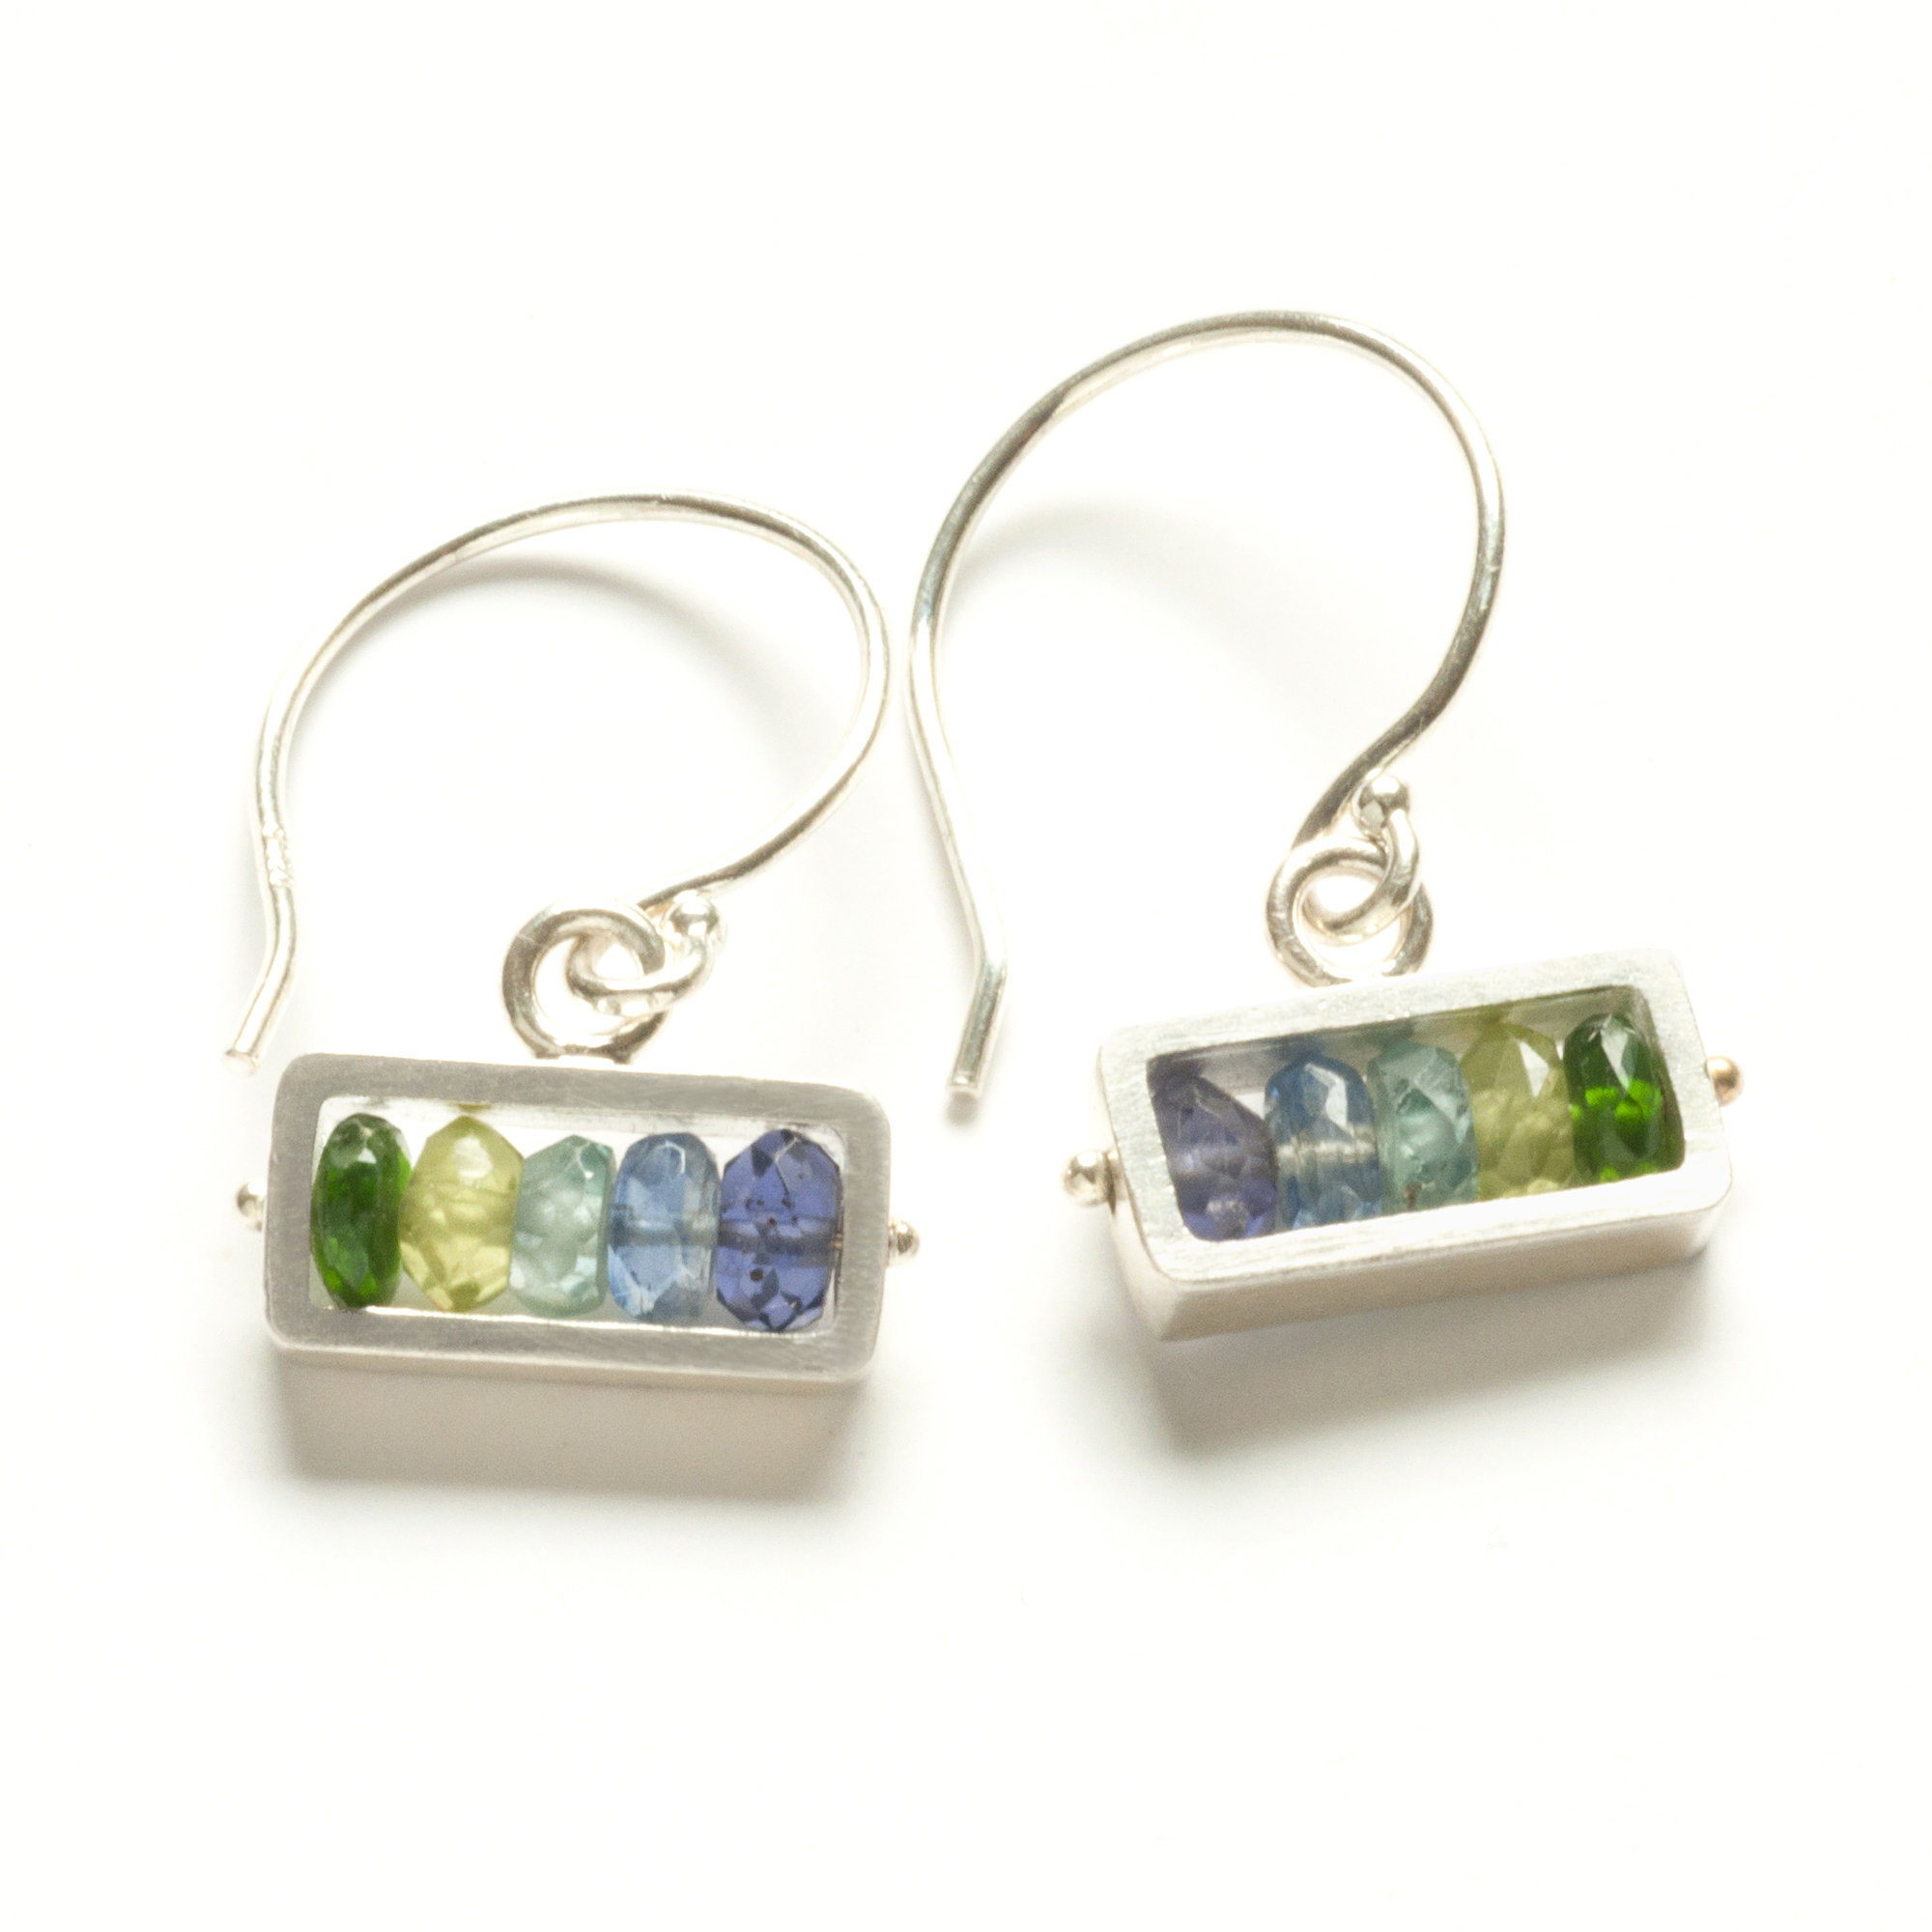 Horizontal Rectangle Earrings in Blue-Green